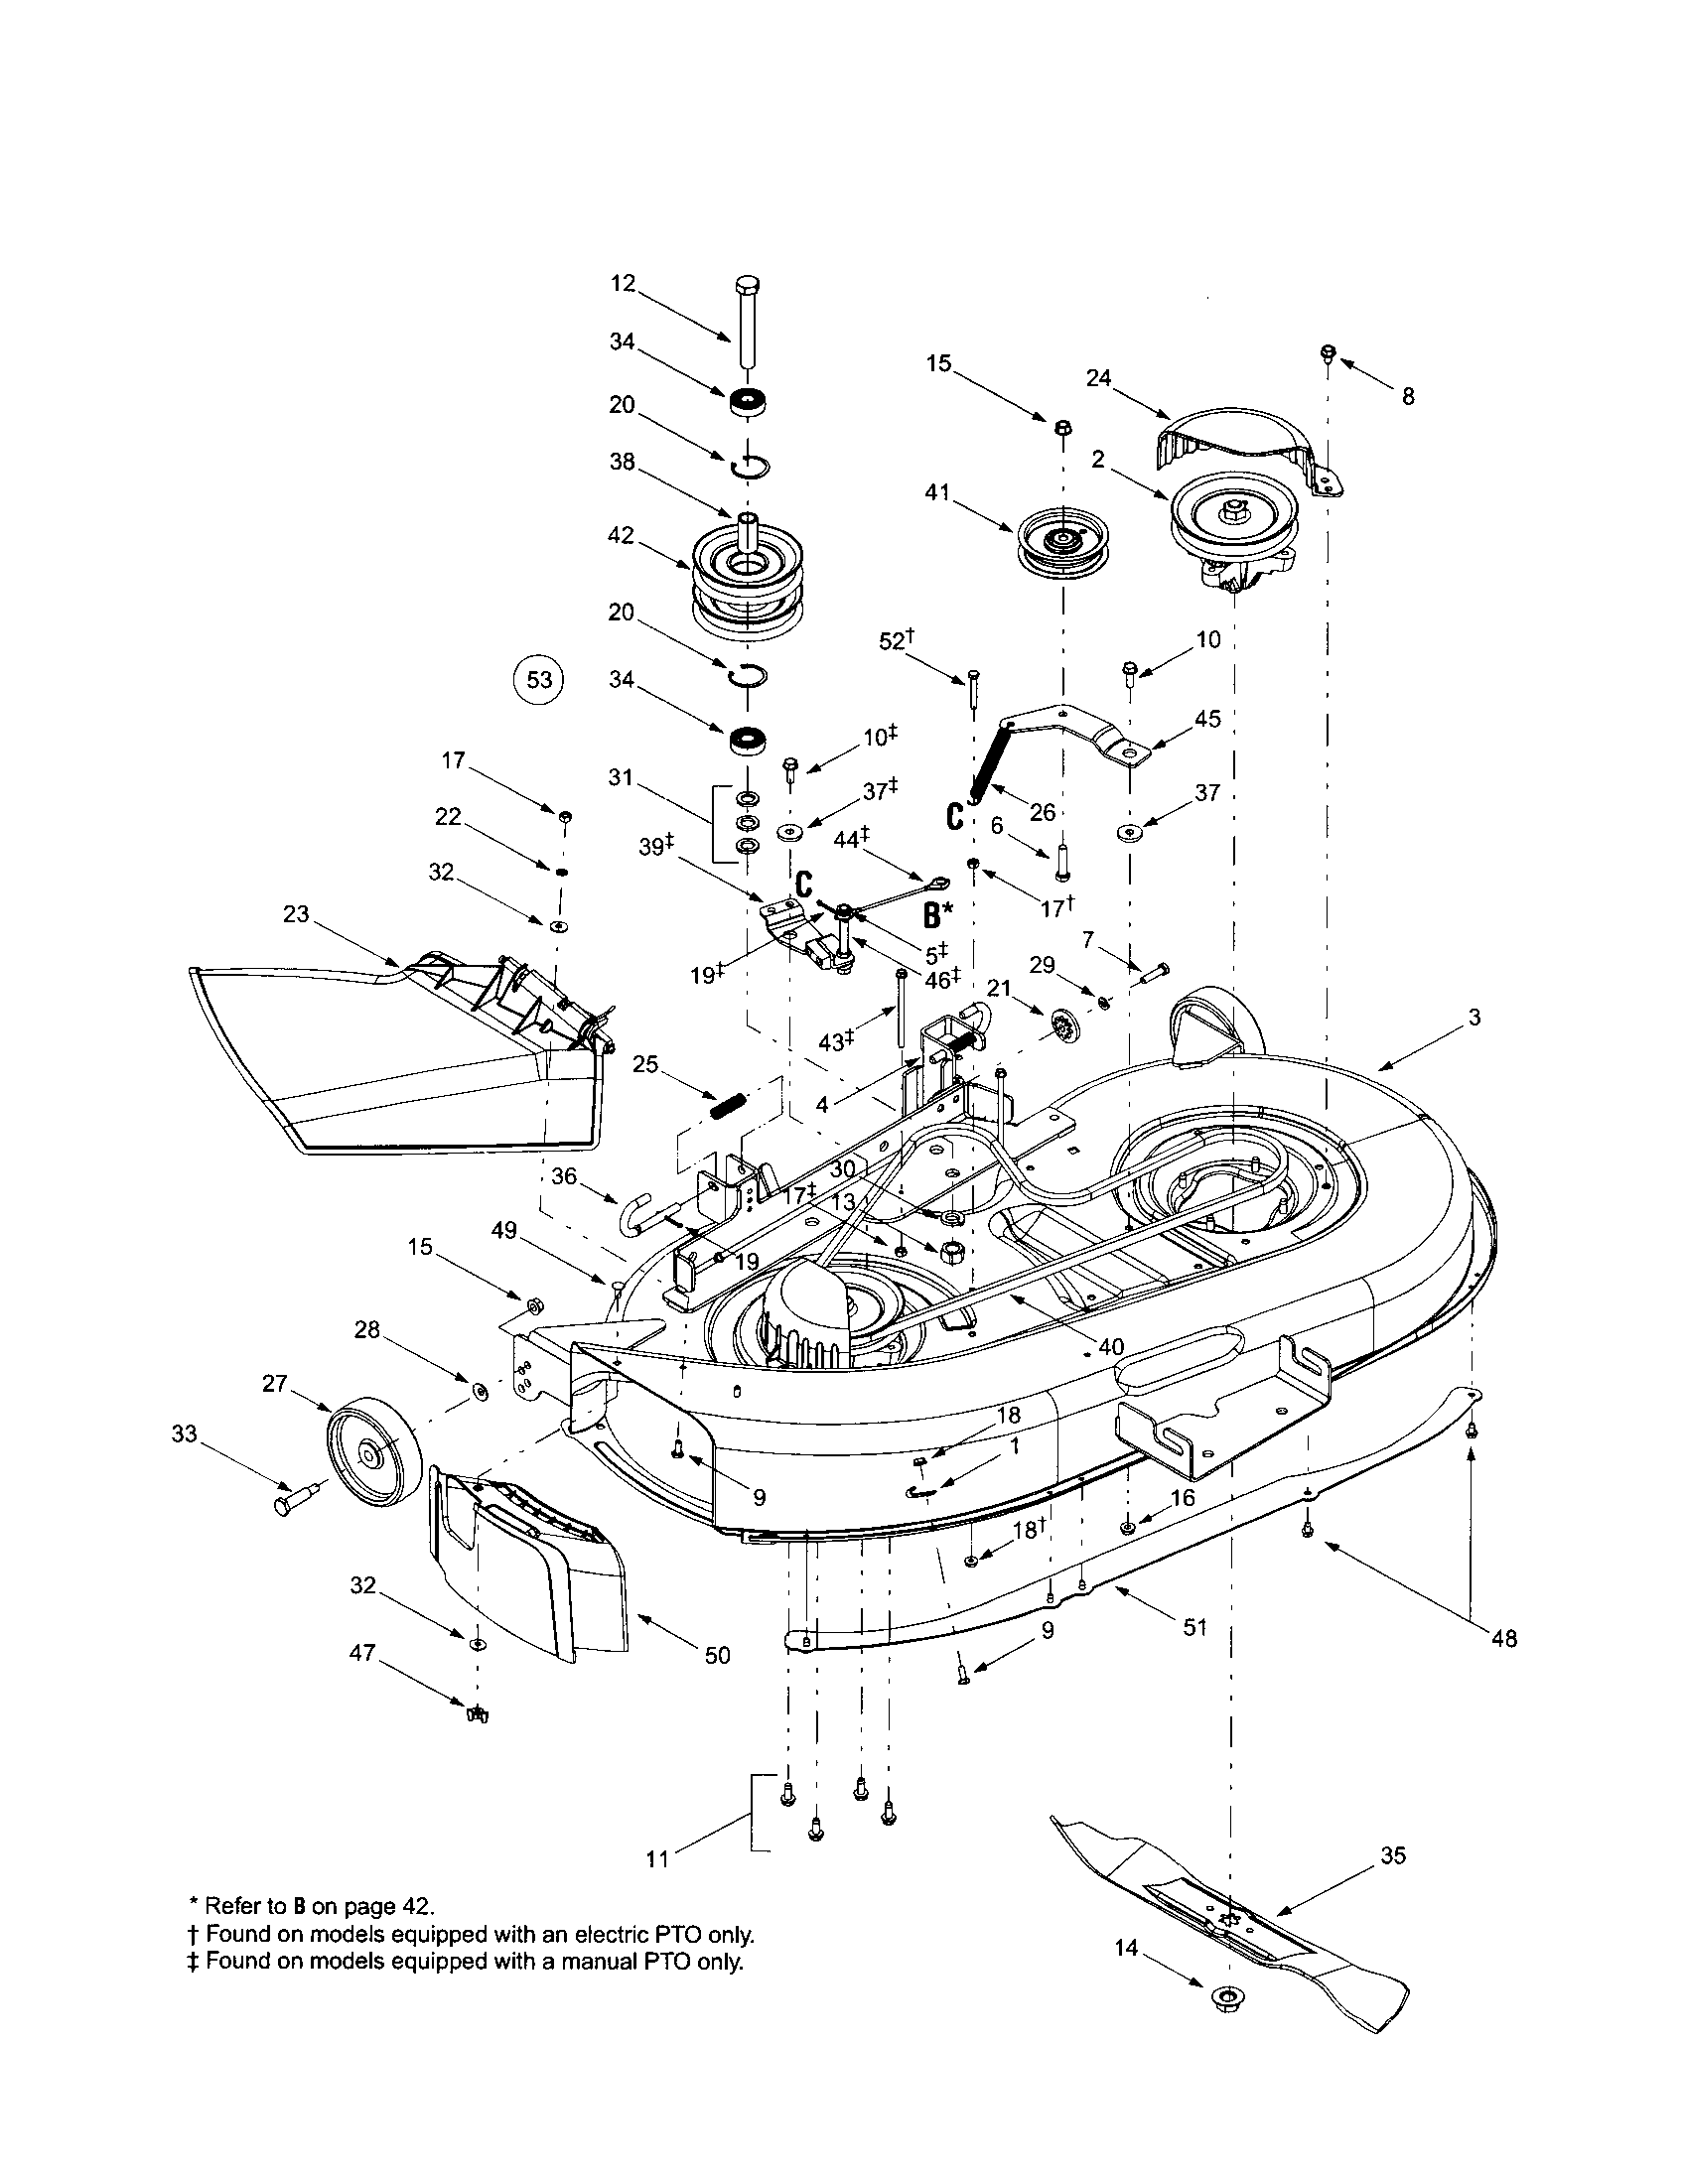 hight resolution of mtd 38 mower deck diagram furthermore mtd snowblower parts diagram looking for mtd model 609 front